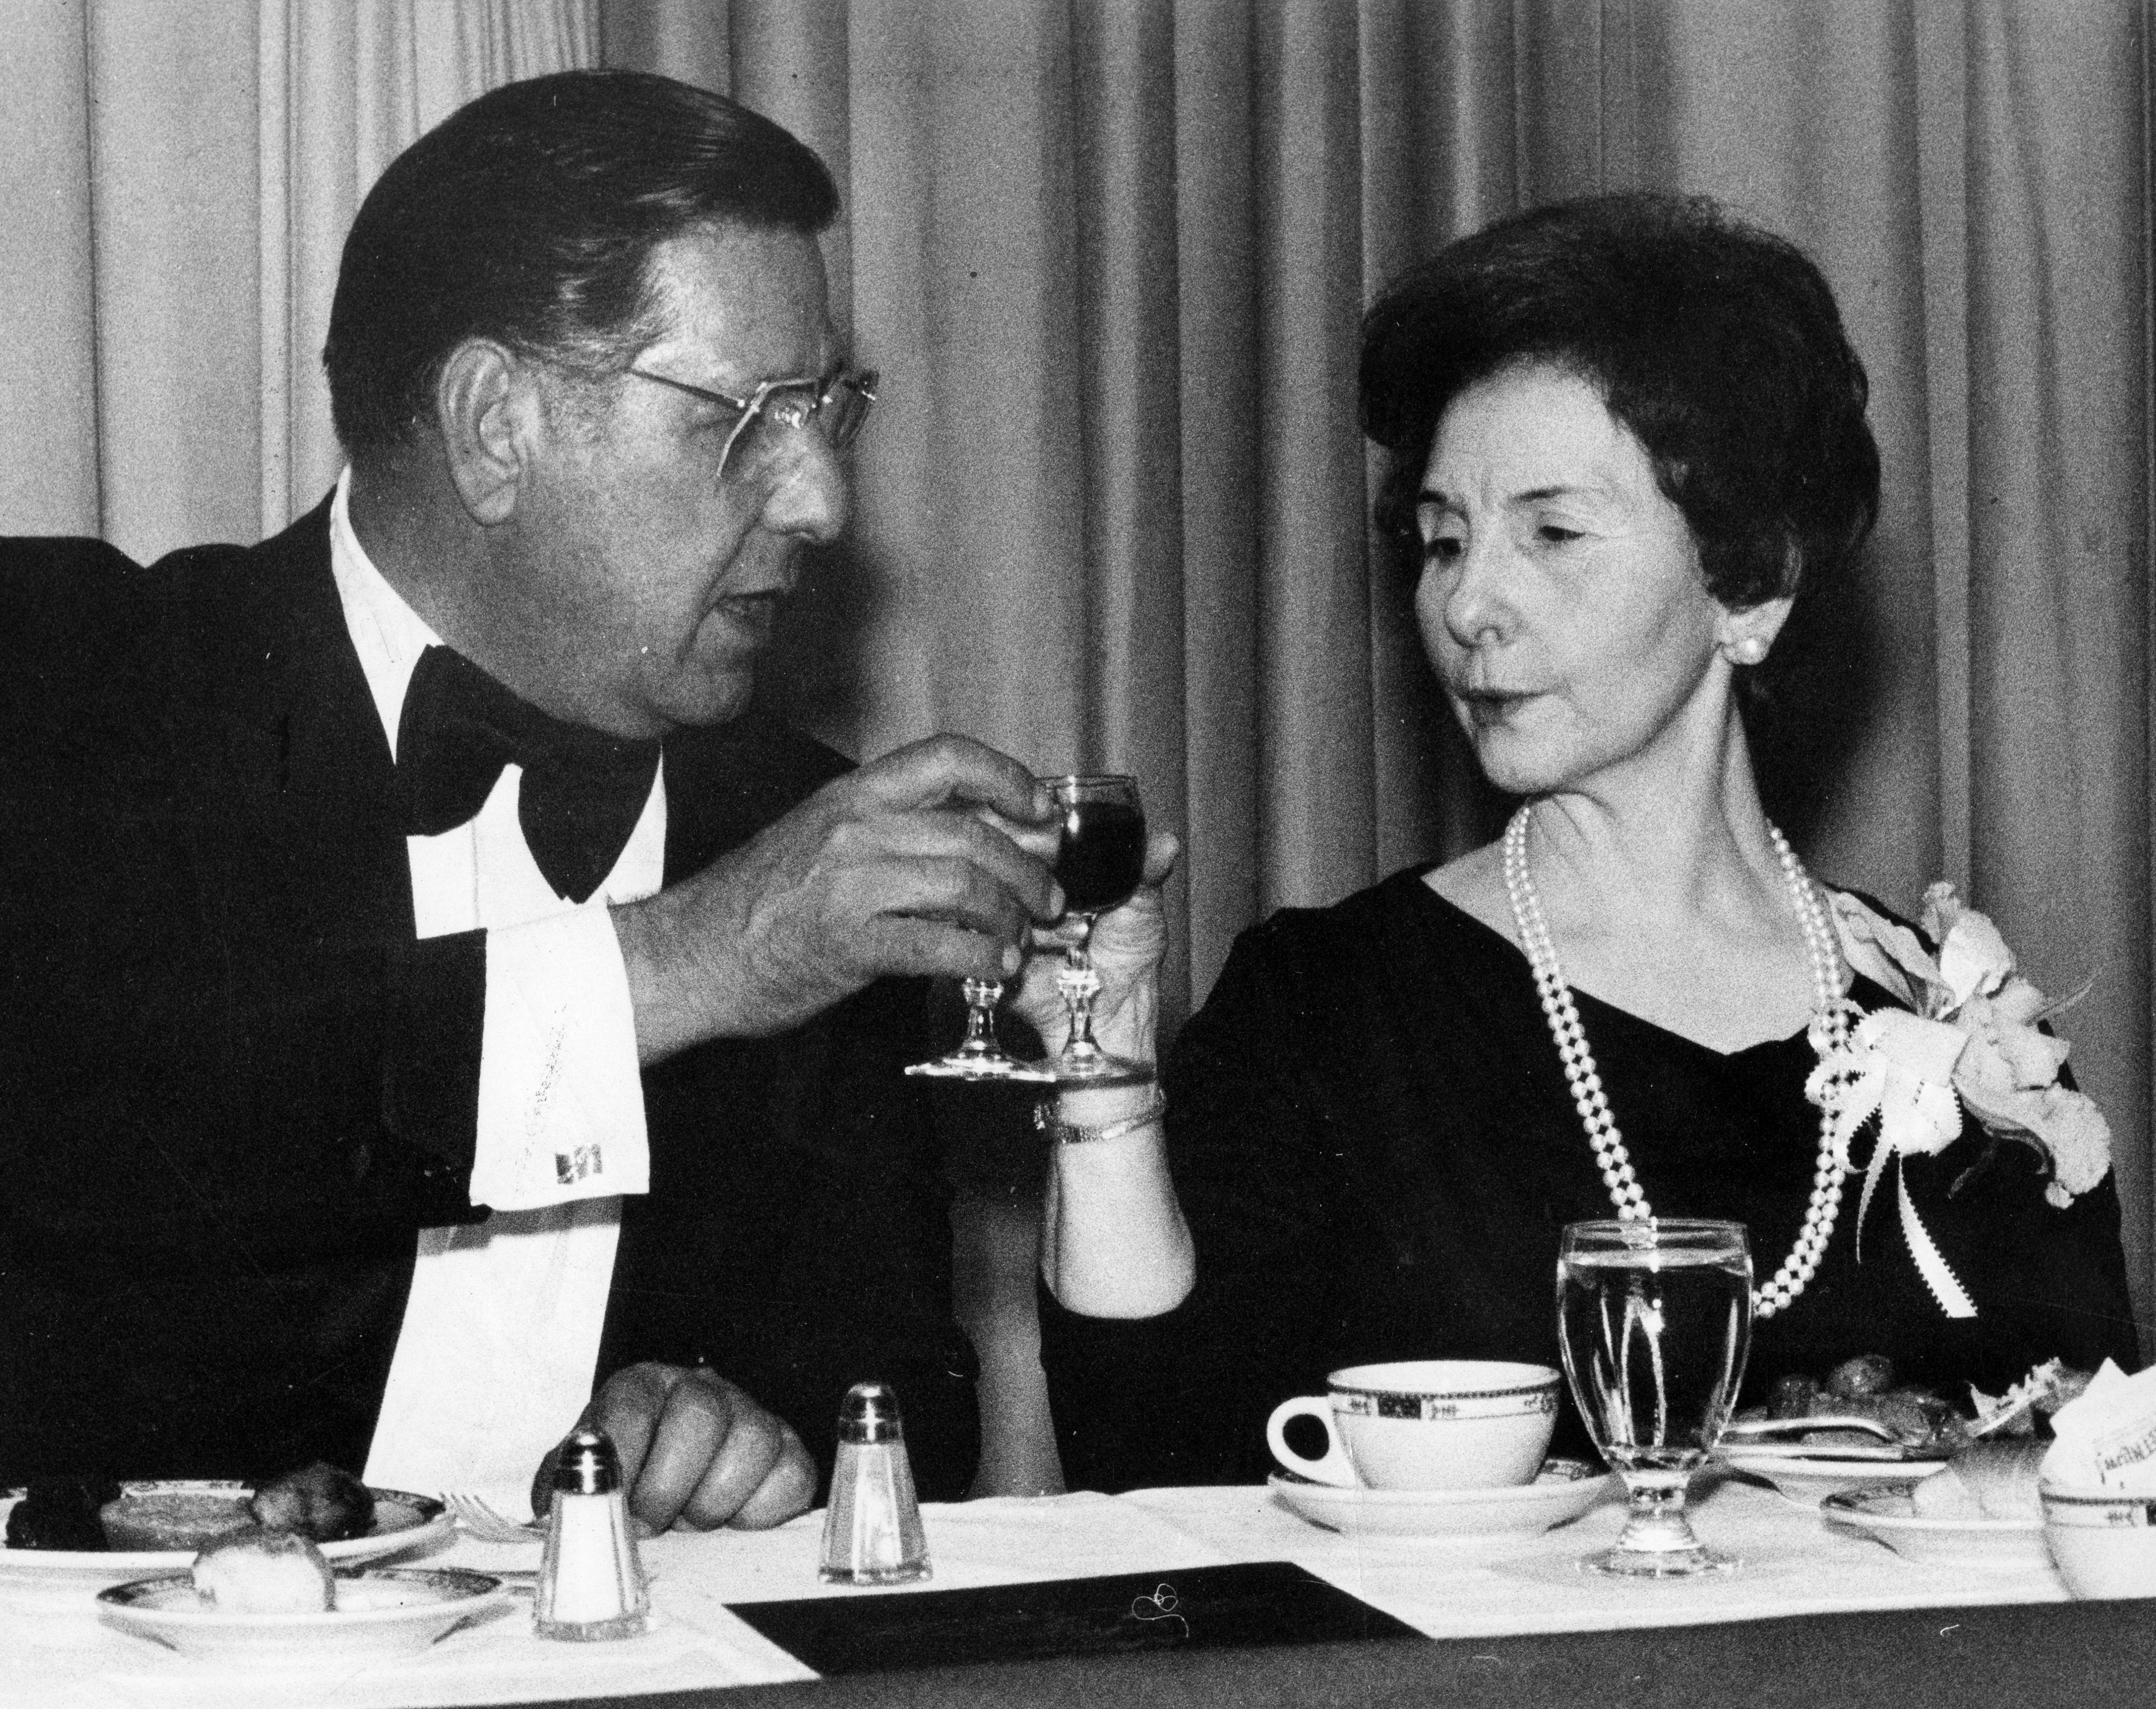 Frank Rizzo offers a wine toast to his wife Carmella at a September 1979 dinner.